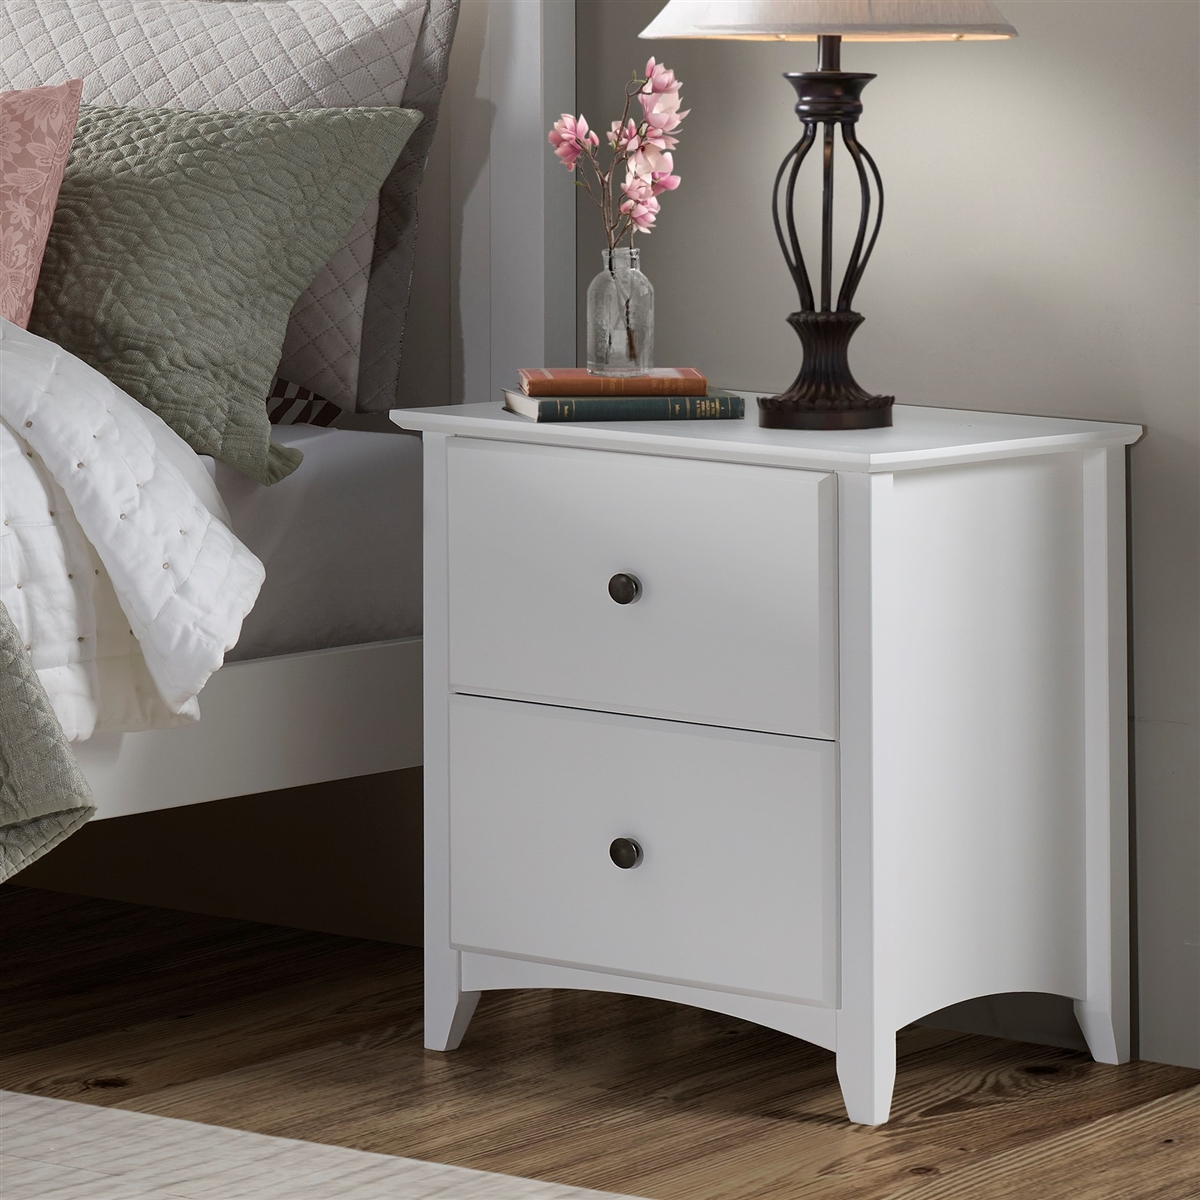 2 Drawer Night Stand White